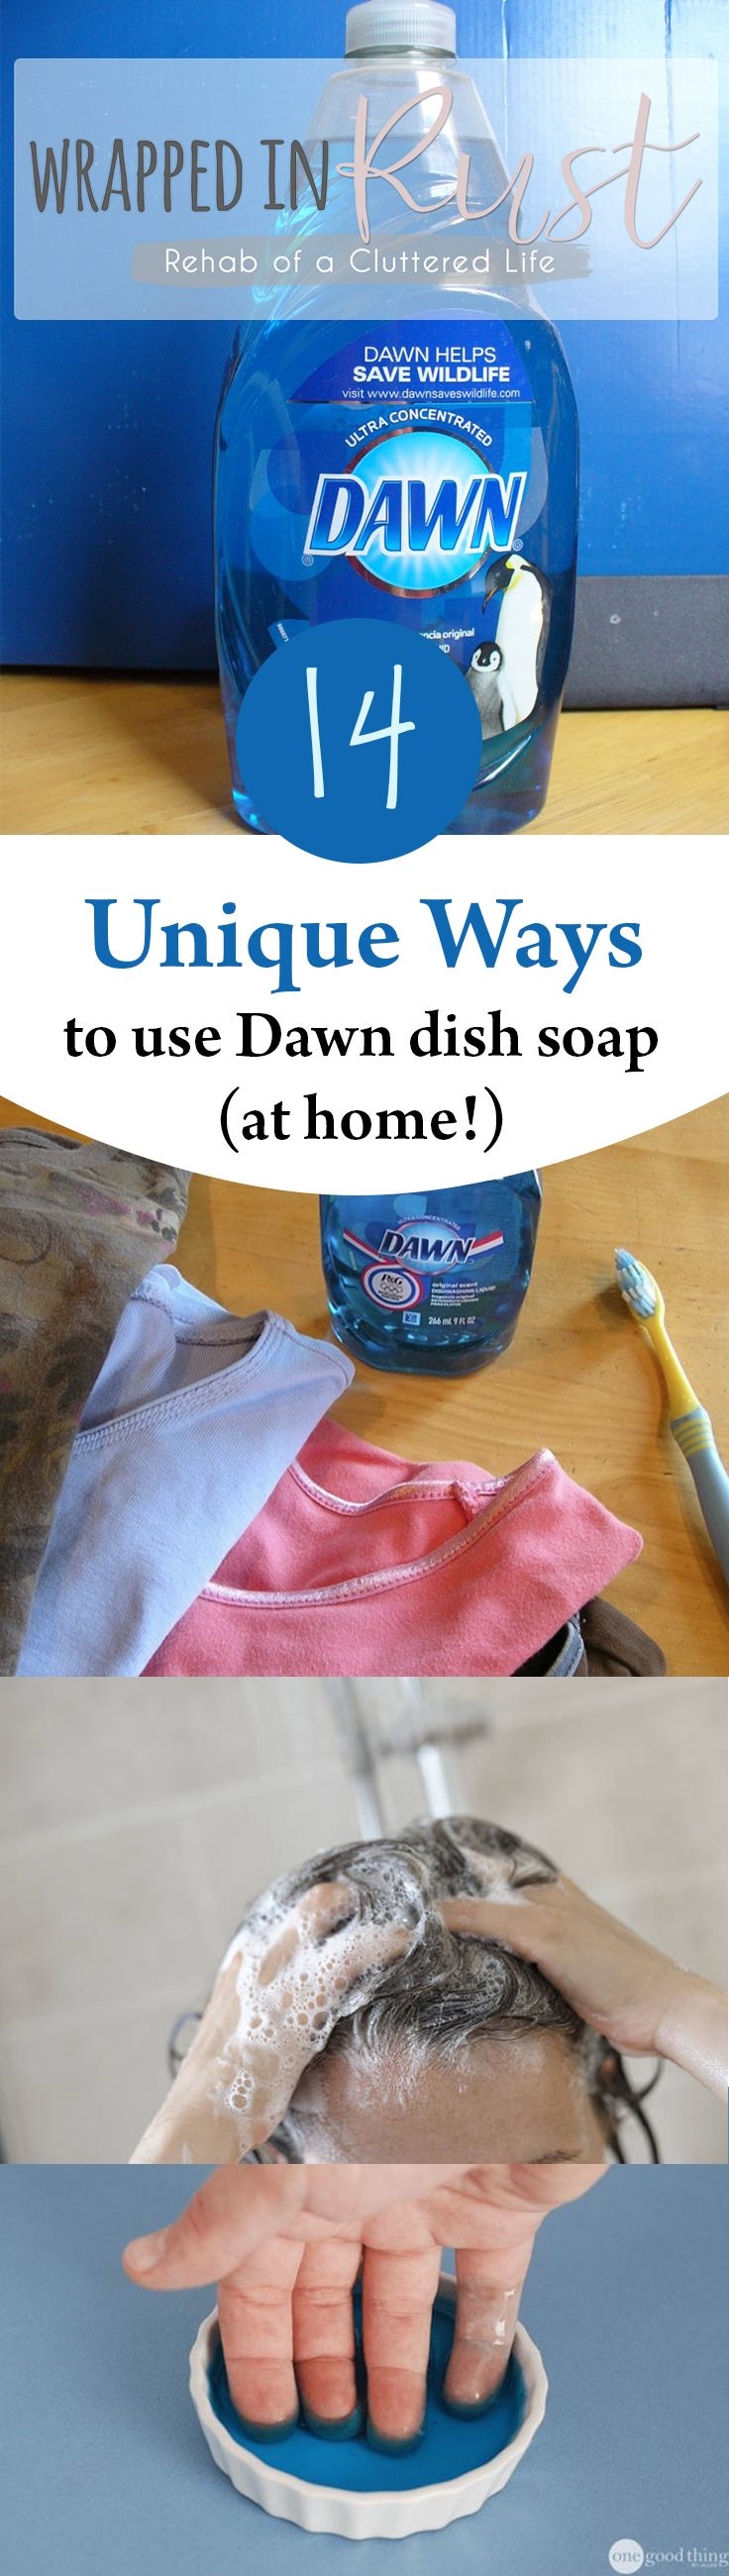 14 Unique Ways to Use Dawn Dish Soap (At Home!) – Page 16